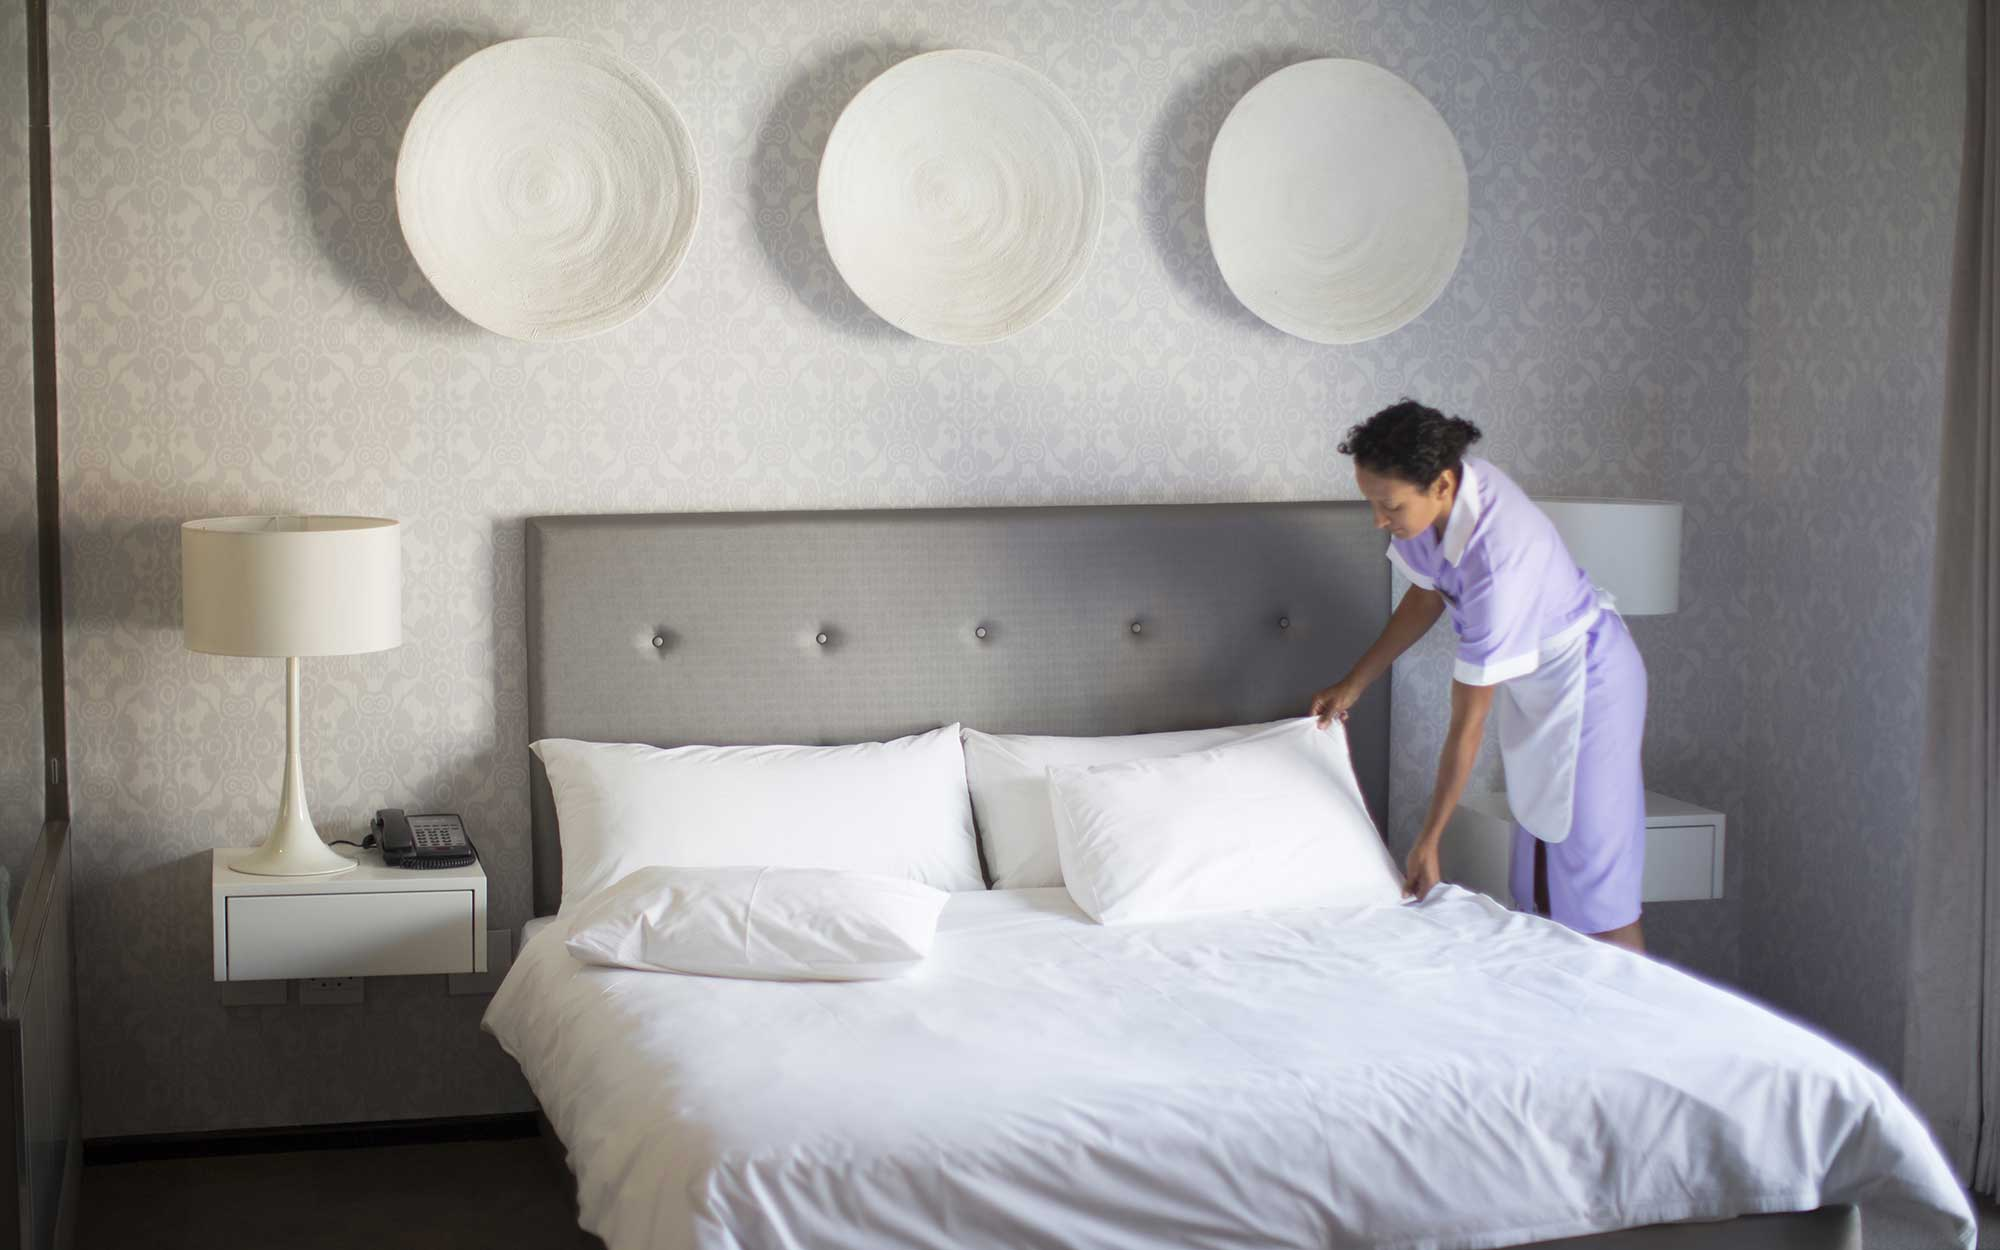 How Much Should You Tip Housekeeping?